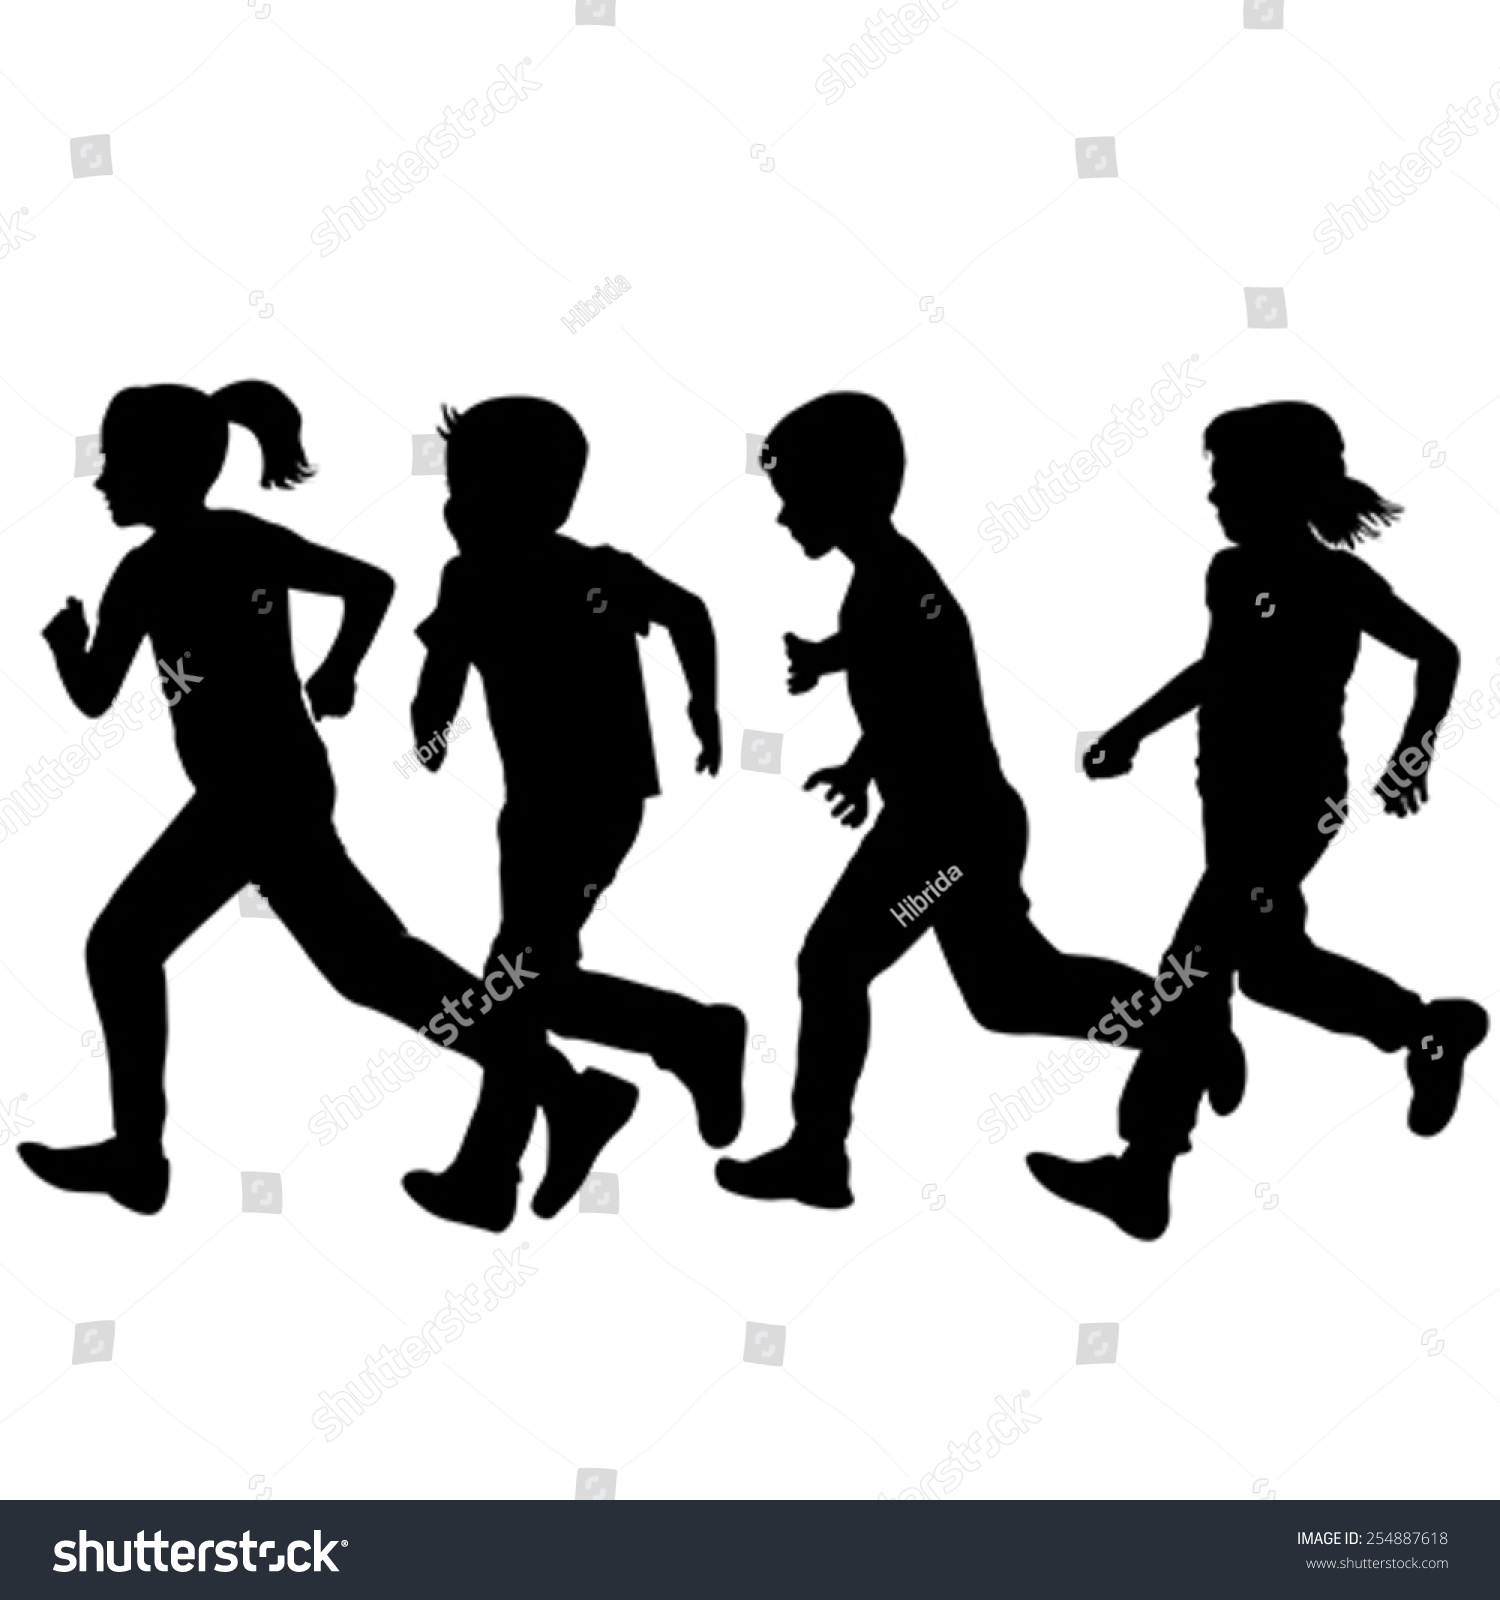 Kids running silhouette vector